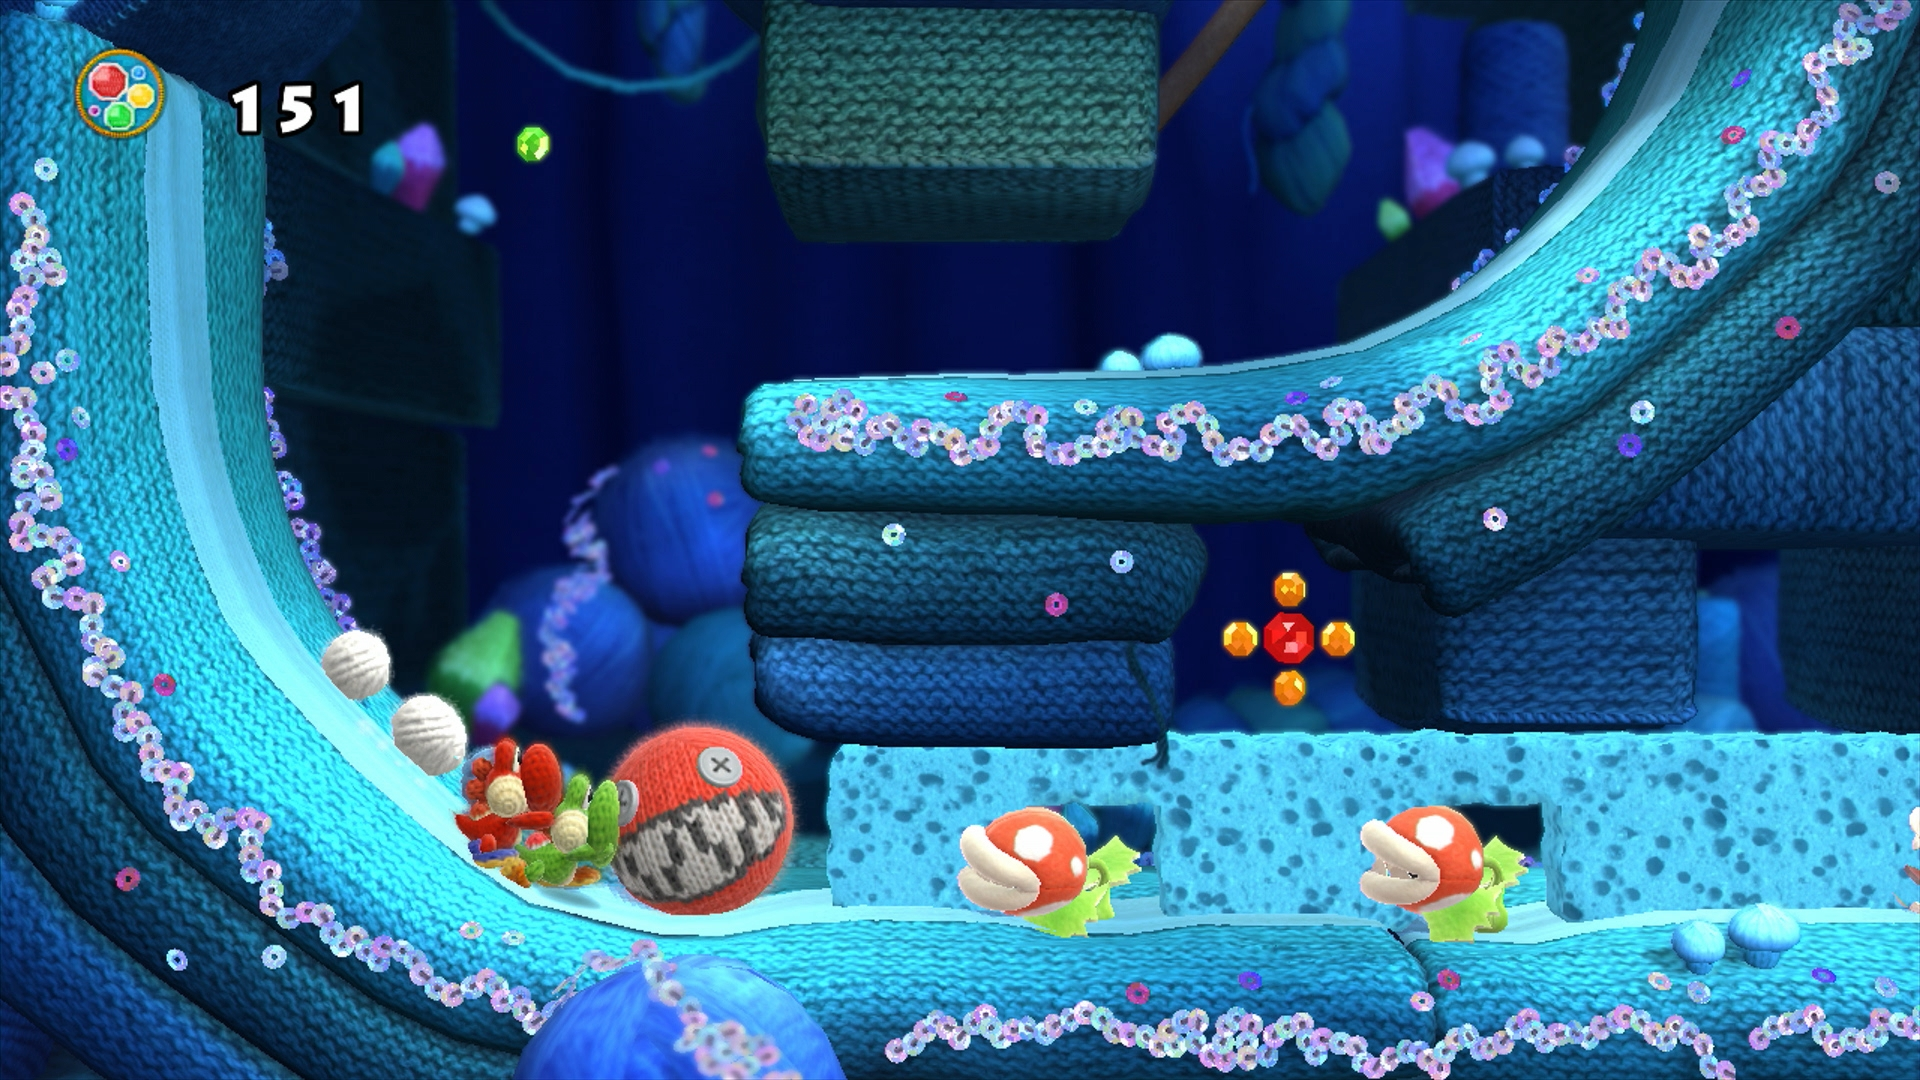 Artistry in Games WiiU_Yoshi_sWW_scrn07_E3 E3 - Reintroducing Gamers To Colors Features  e3 Colors In Art